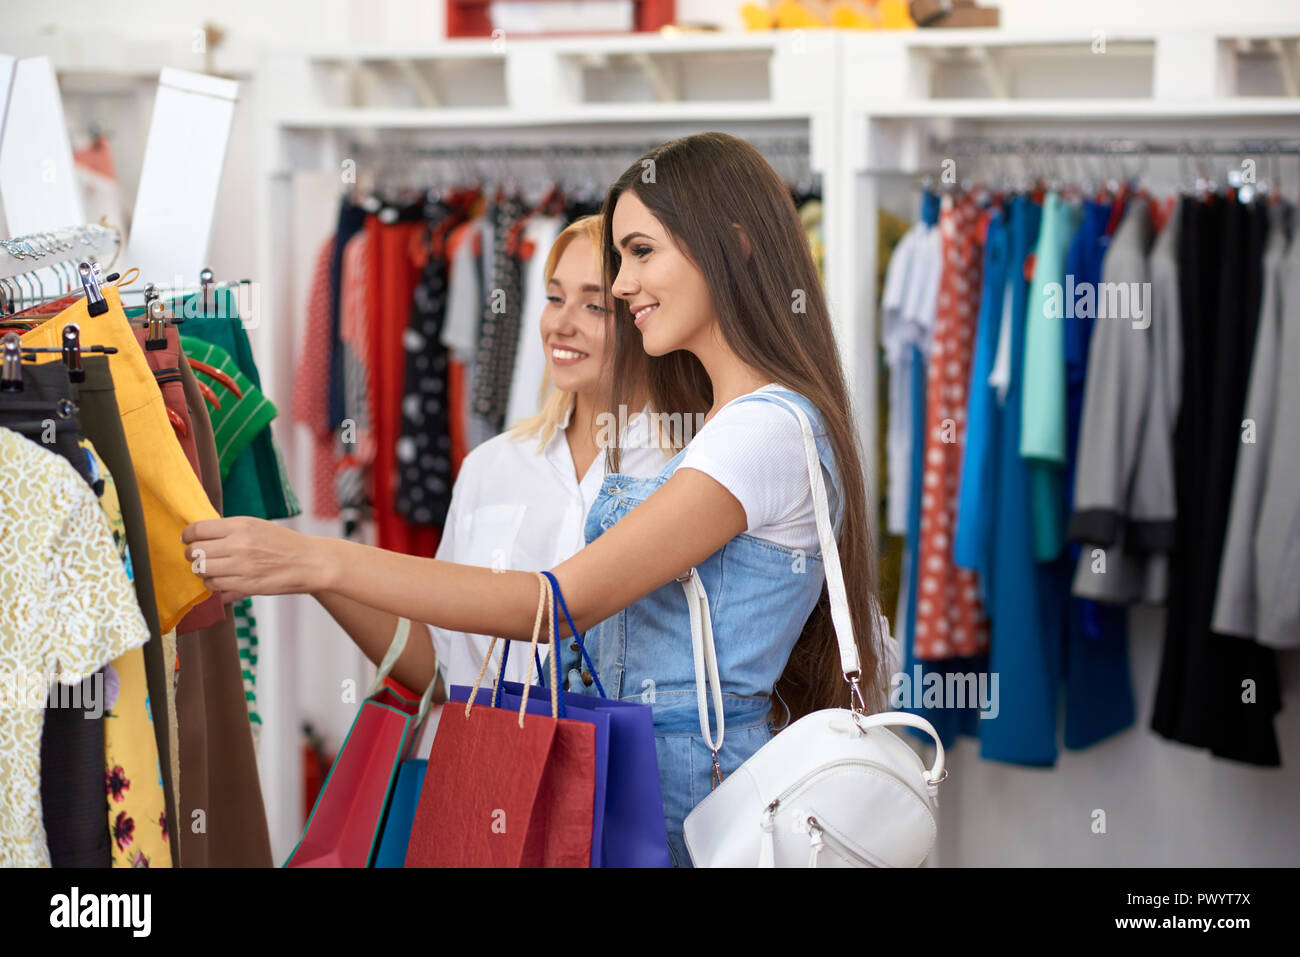 Side view of two pretty women choosing new clothes in mall. Smiling customers looking at shirts and skirts, discussing it and enjoying shopping process. Concept  of buying and happiness. - Stock Image